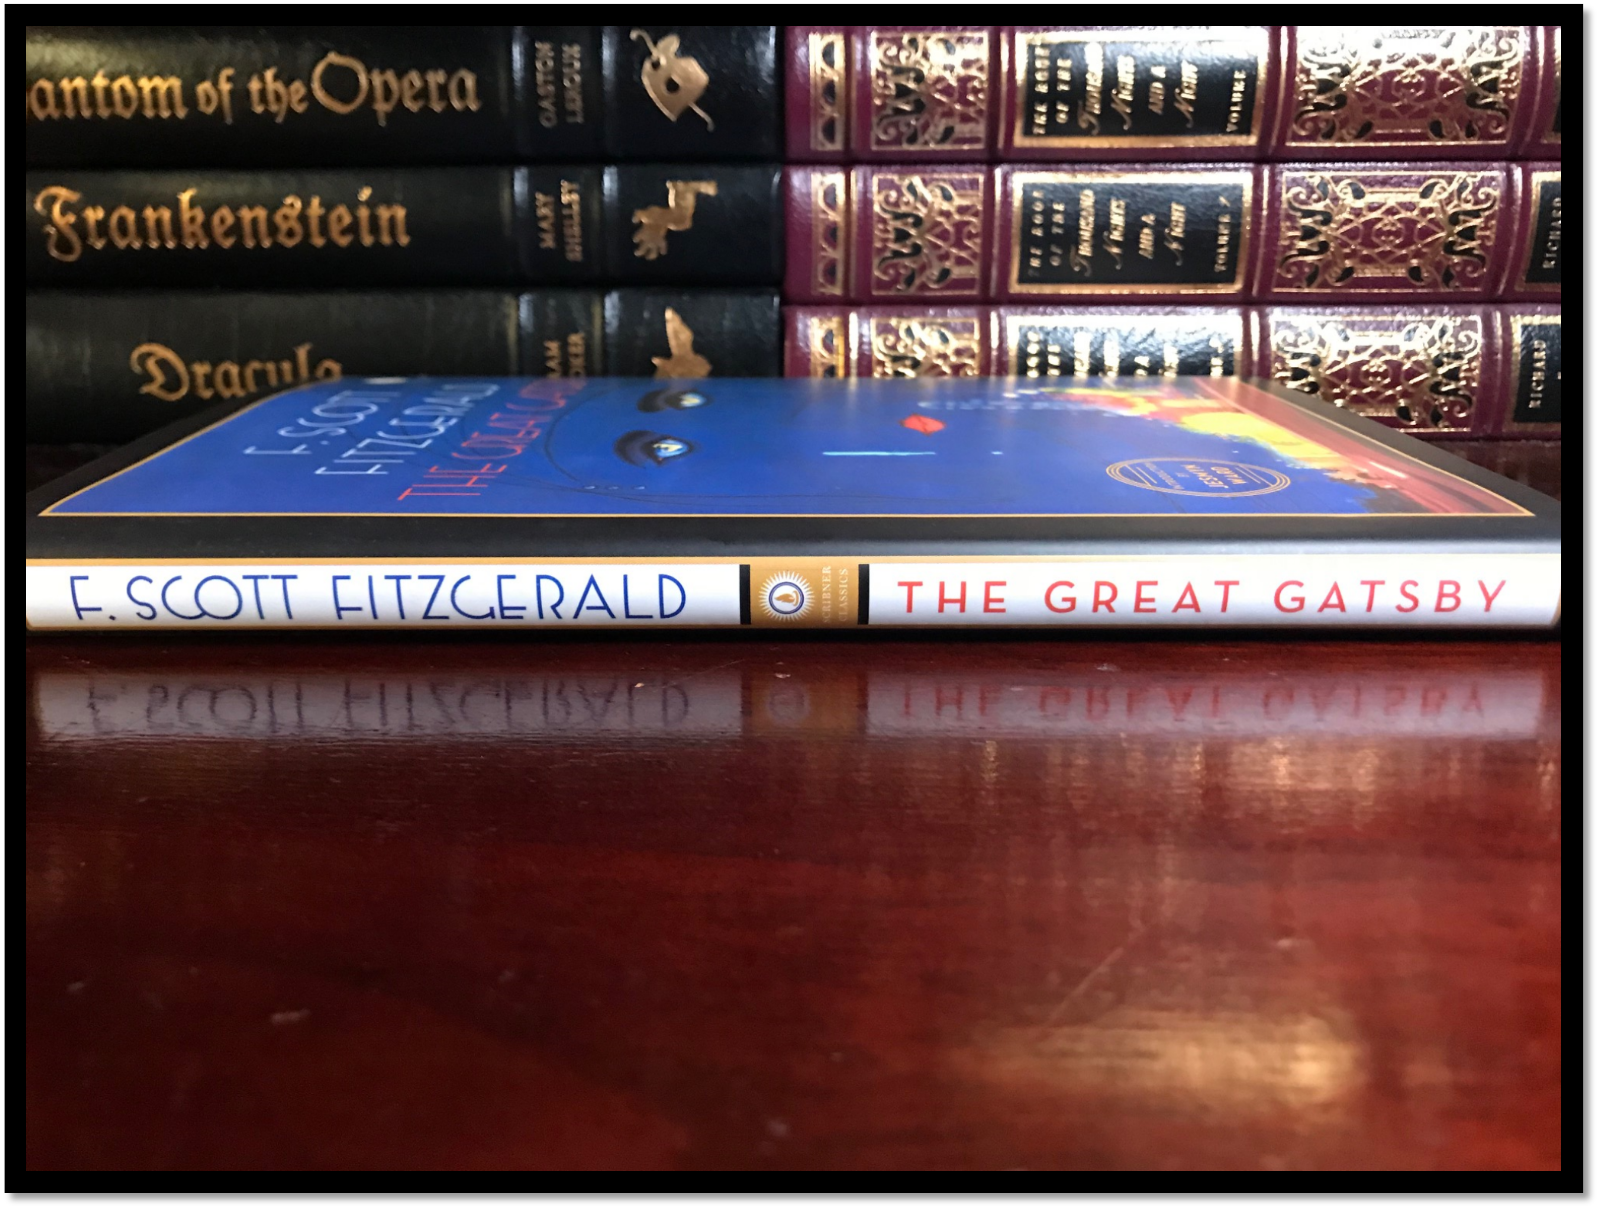 The Great Gatsby by F. Scott Fitzgerald Brand New Deluxe Classic Gift Hardcover 2